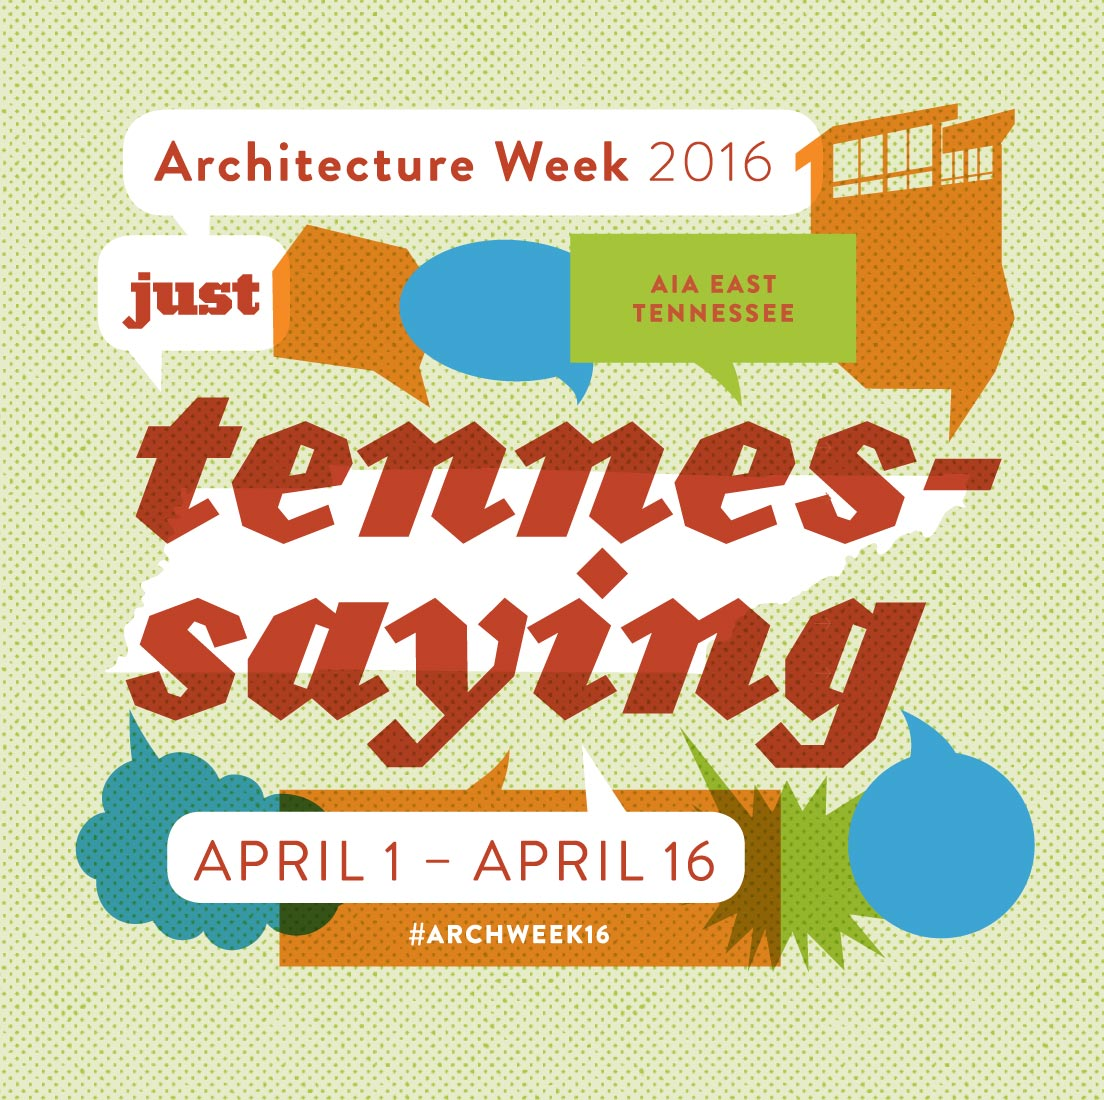 AIA East TN Architecture Week 2016 graphic